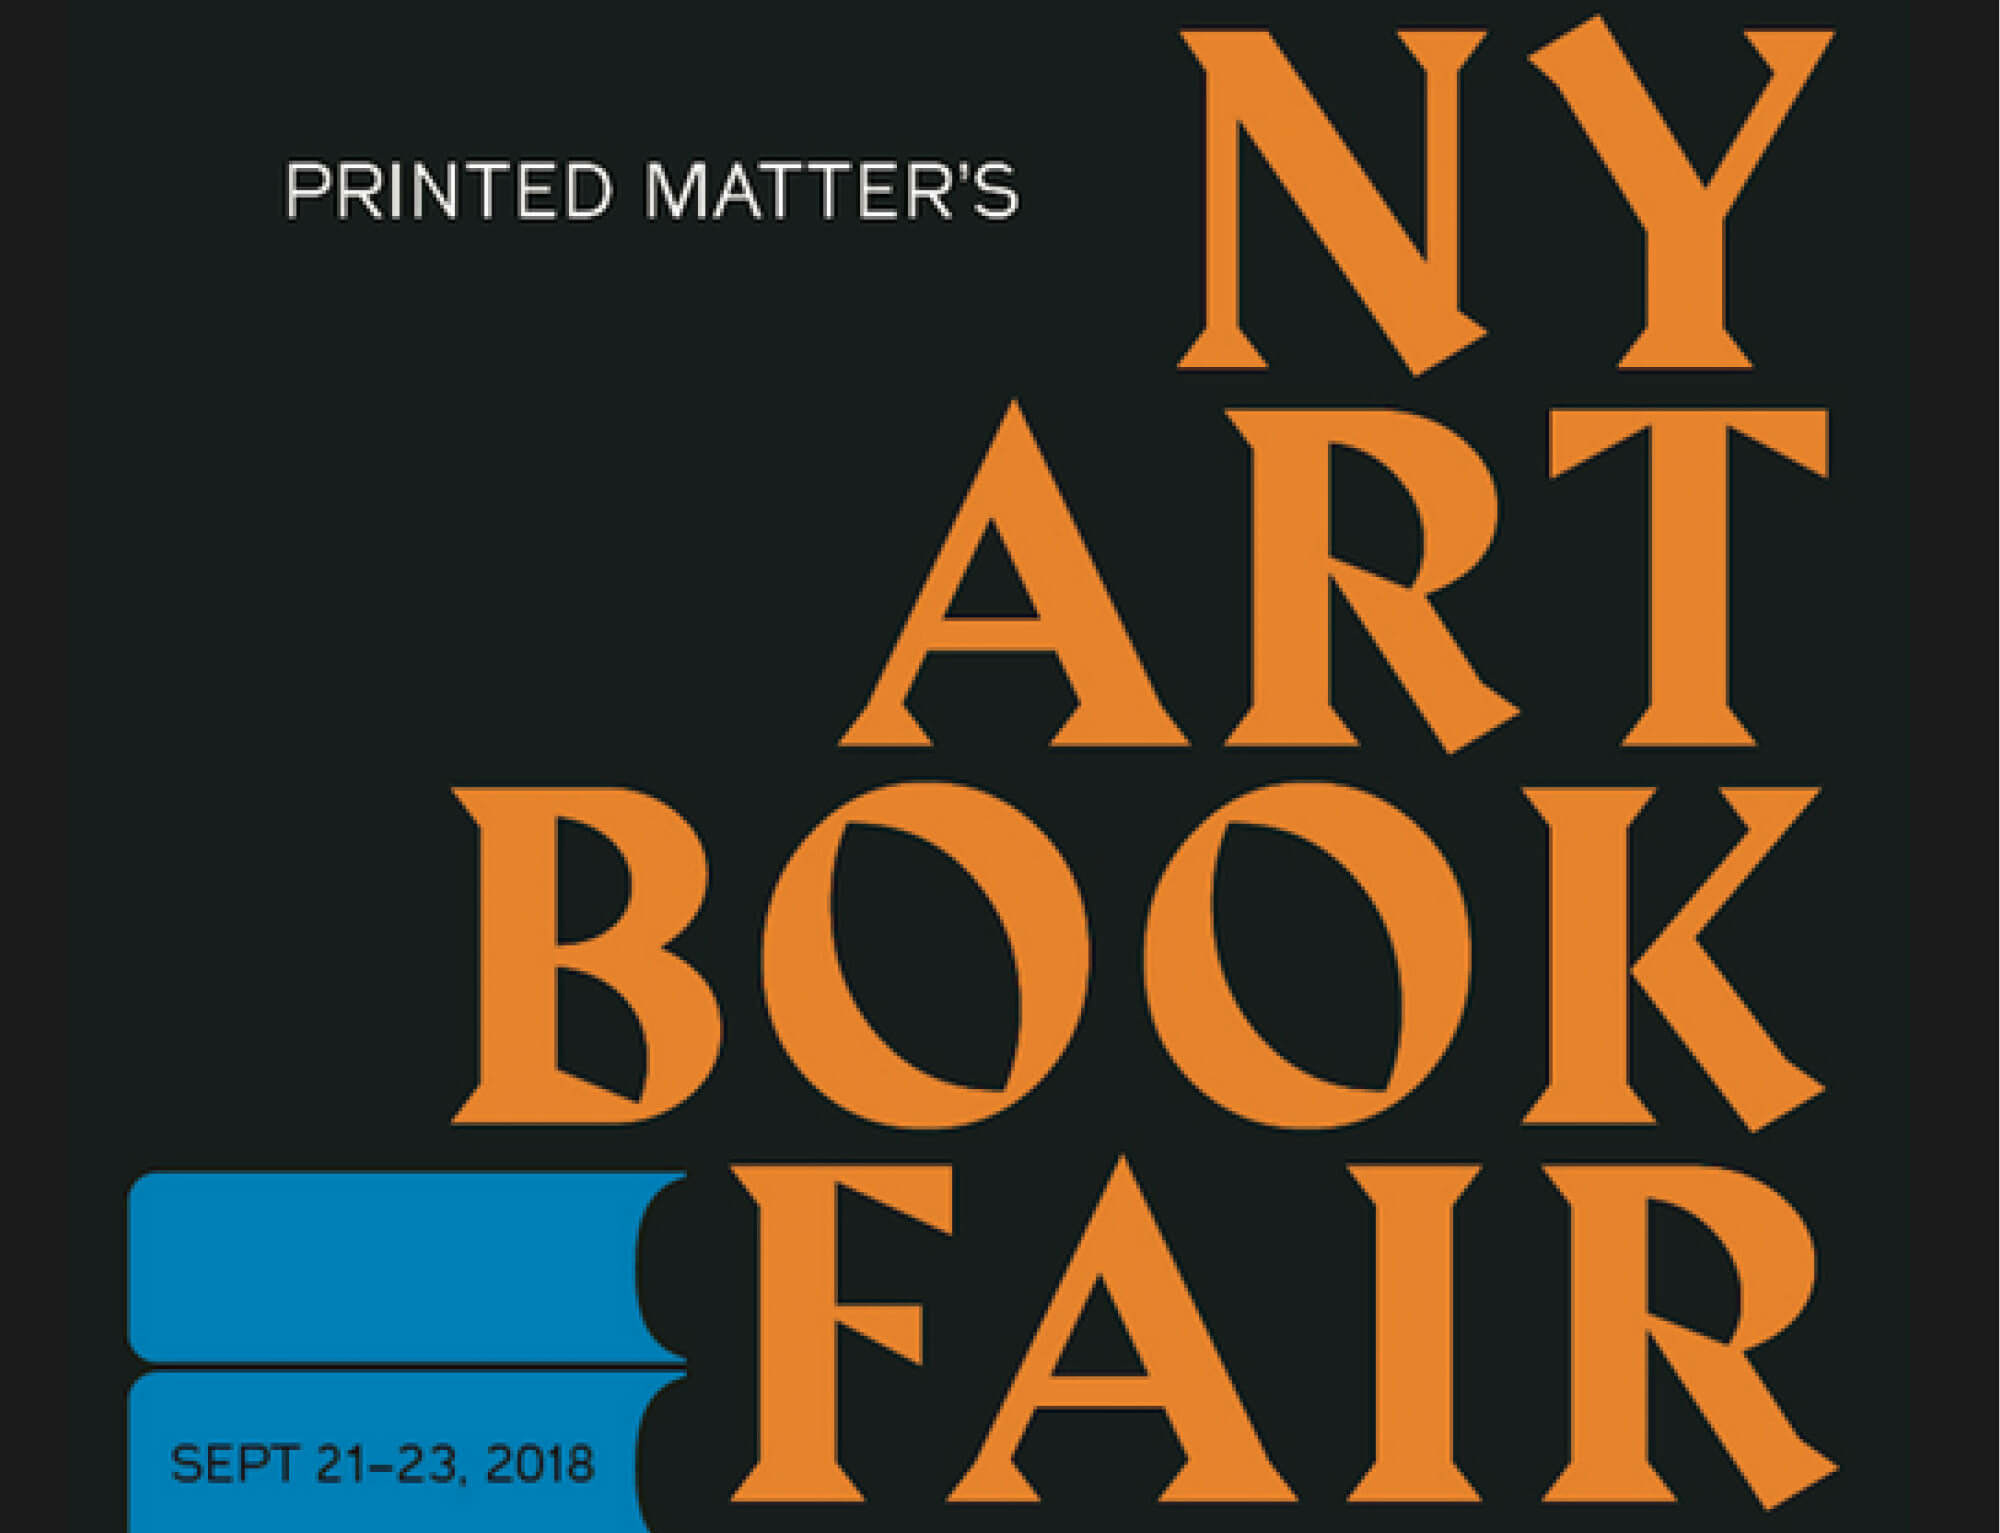 Lisson Gallery to participate in two book fairs this September